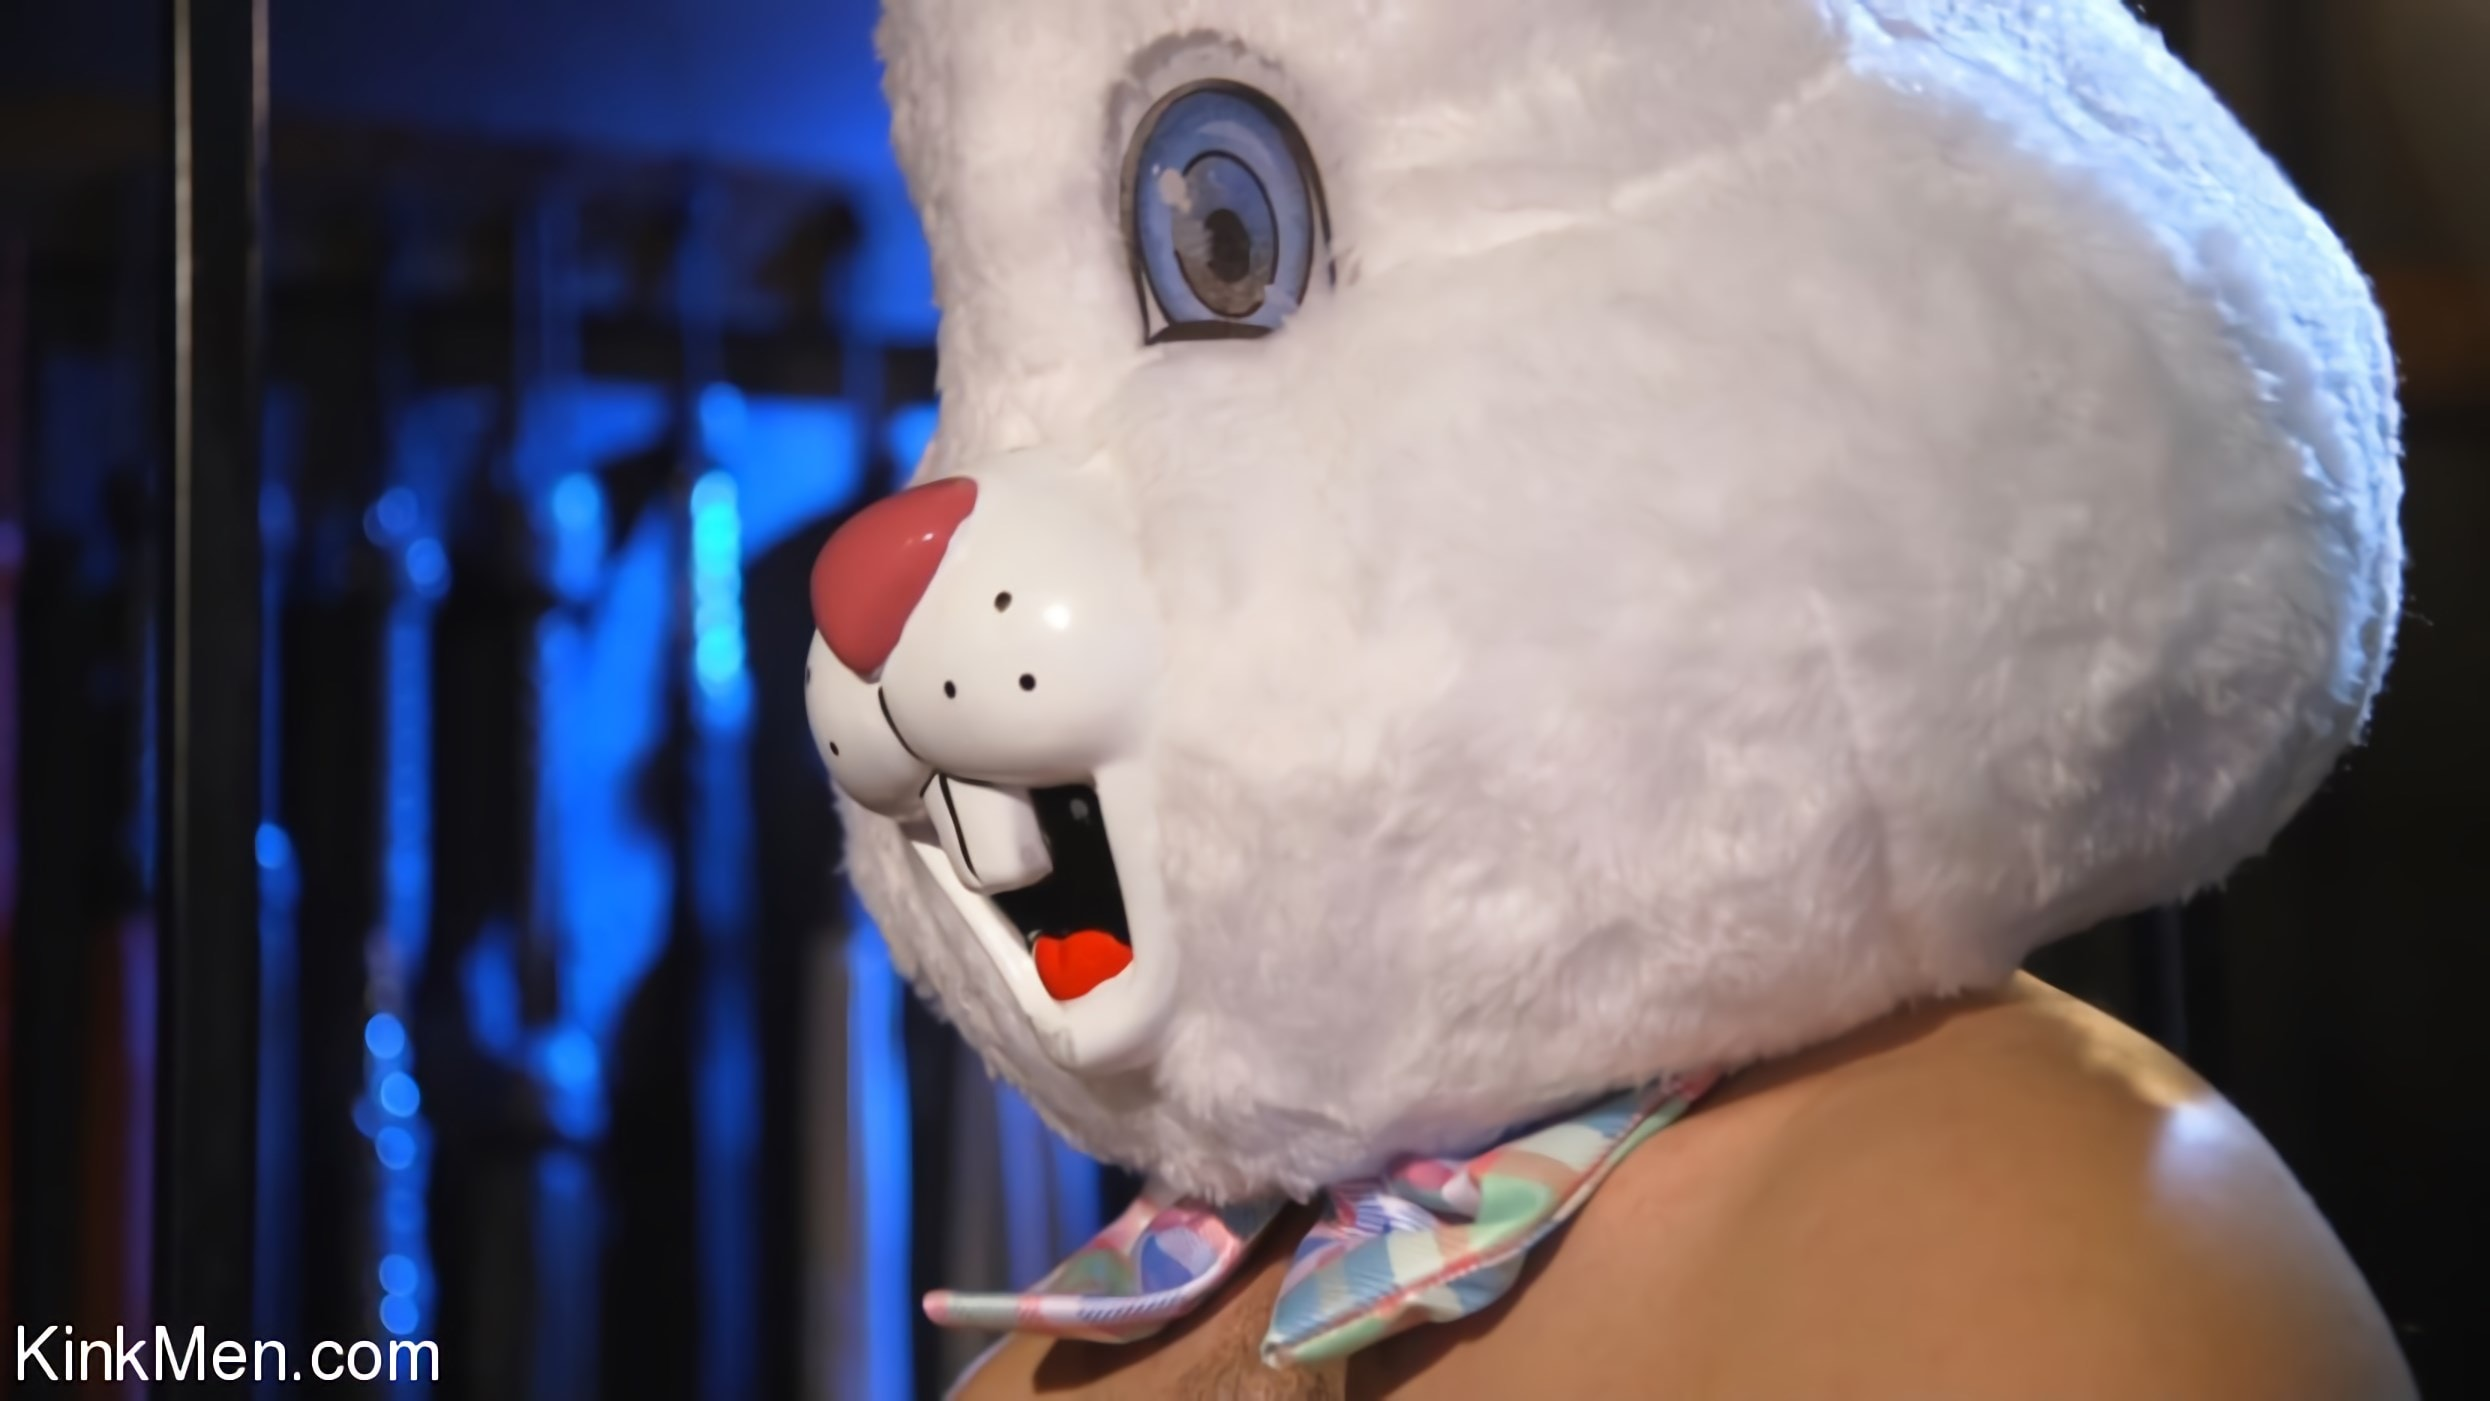 Ari Koyote - Bad Bunny: Ari Coyote Is Too Horny For Easter | Picture (4)